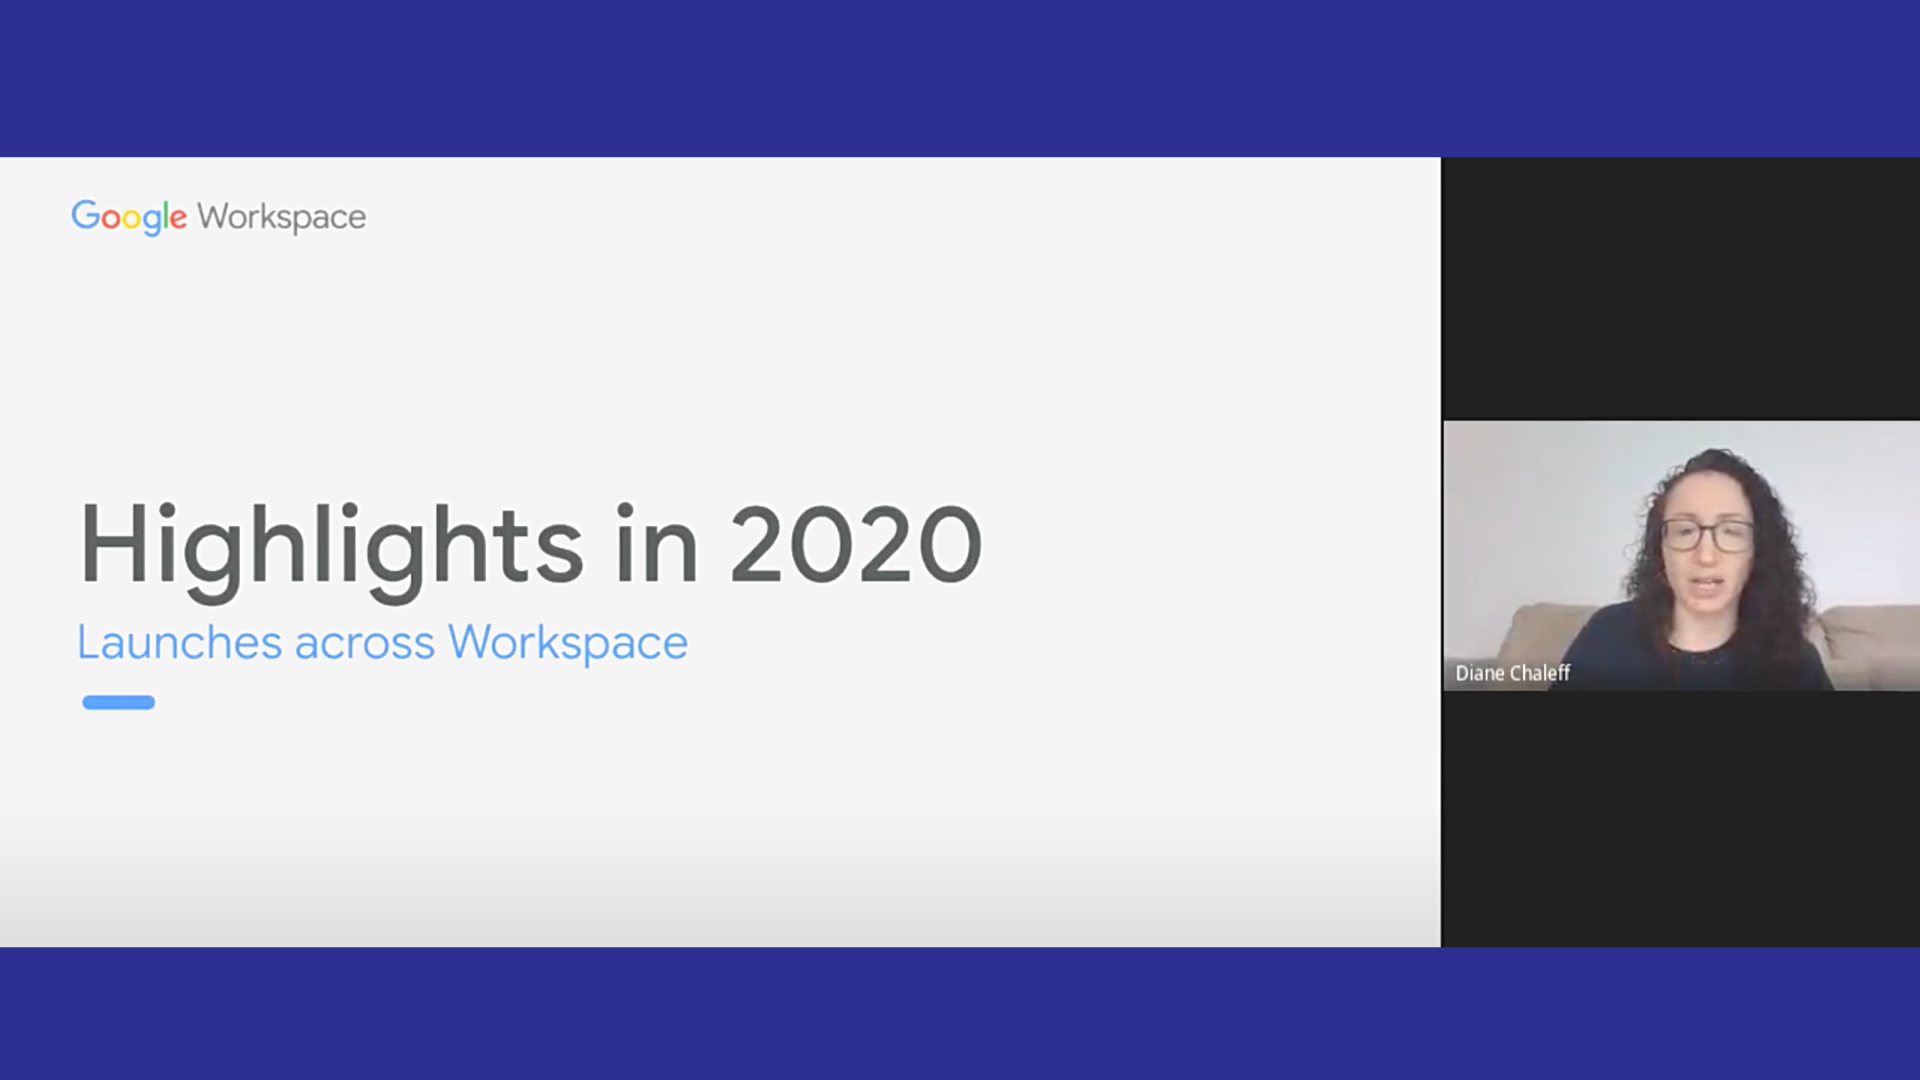 Diana Chaleff speaks with the C2C Community about the Google Workspace feature enhancements in 2020.